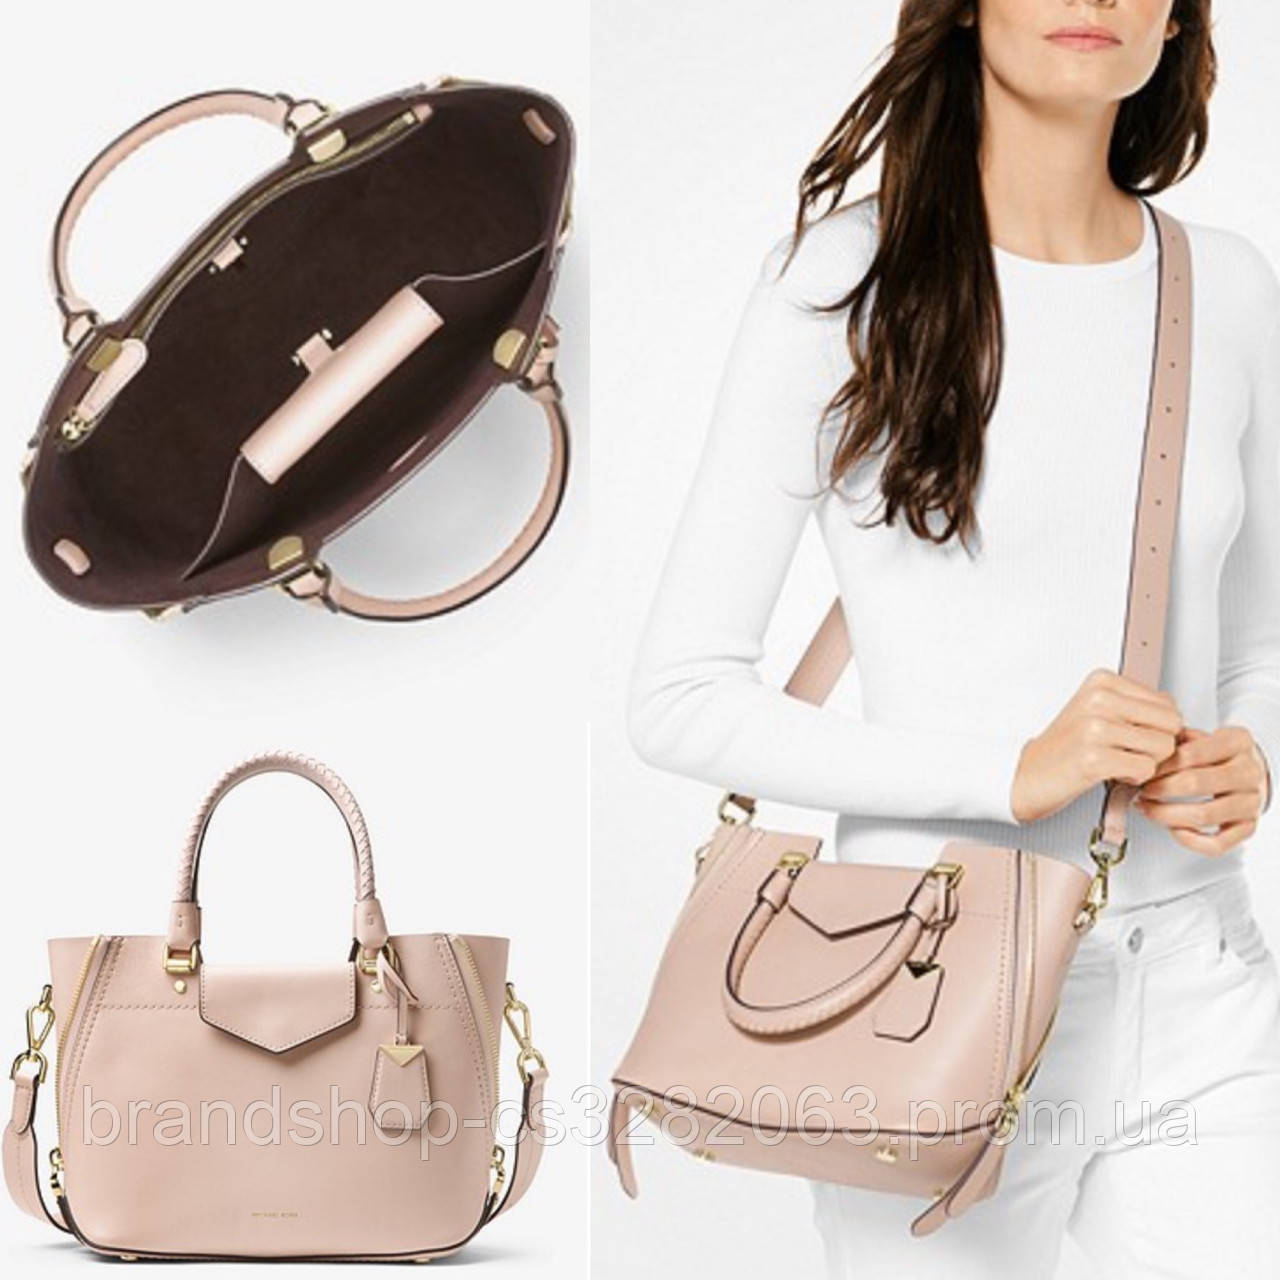 Сумочка Michael Kors Blakely satchel